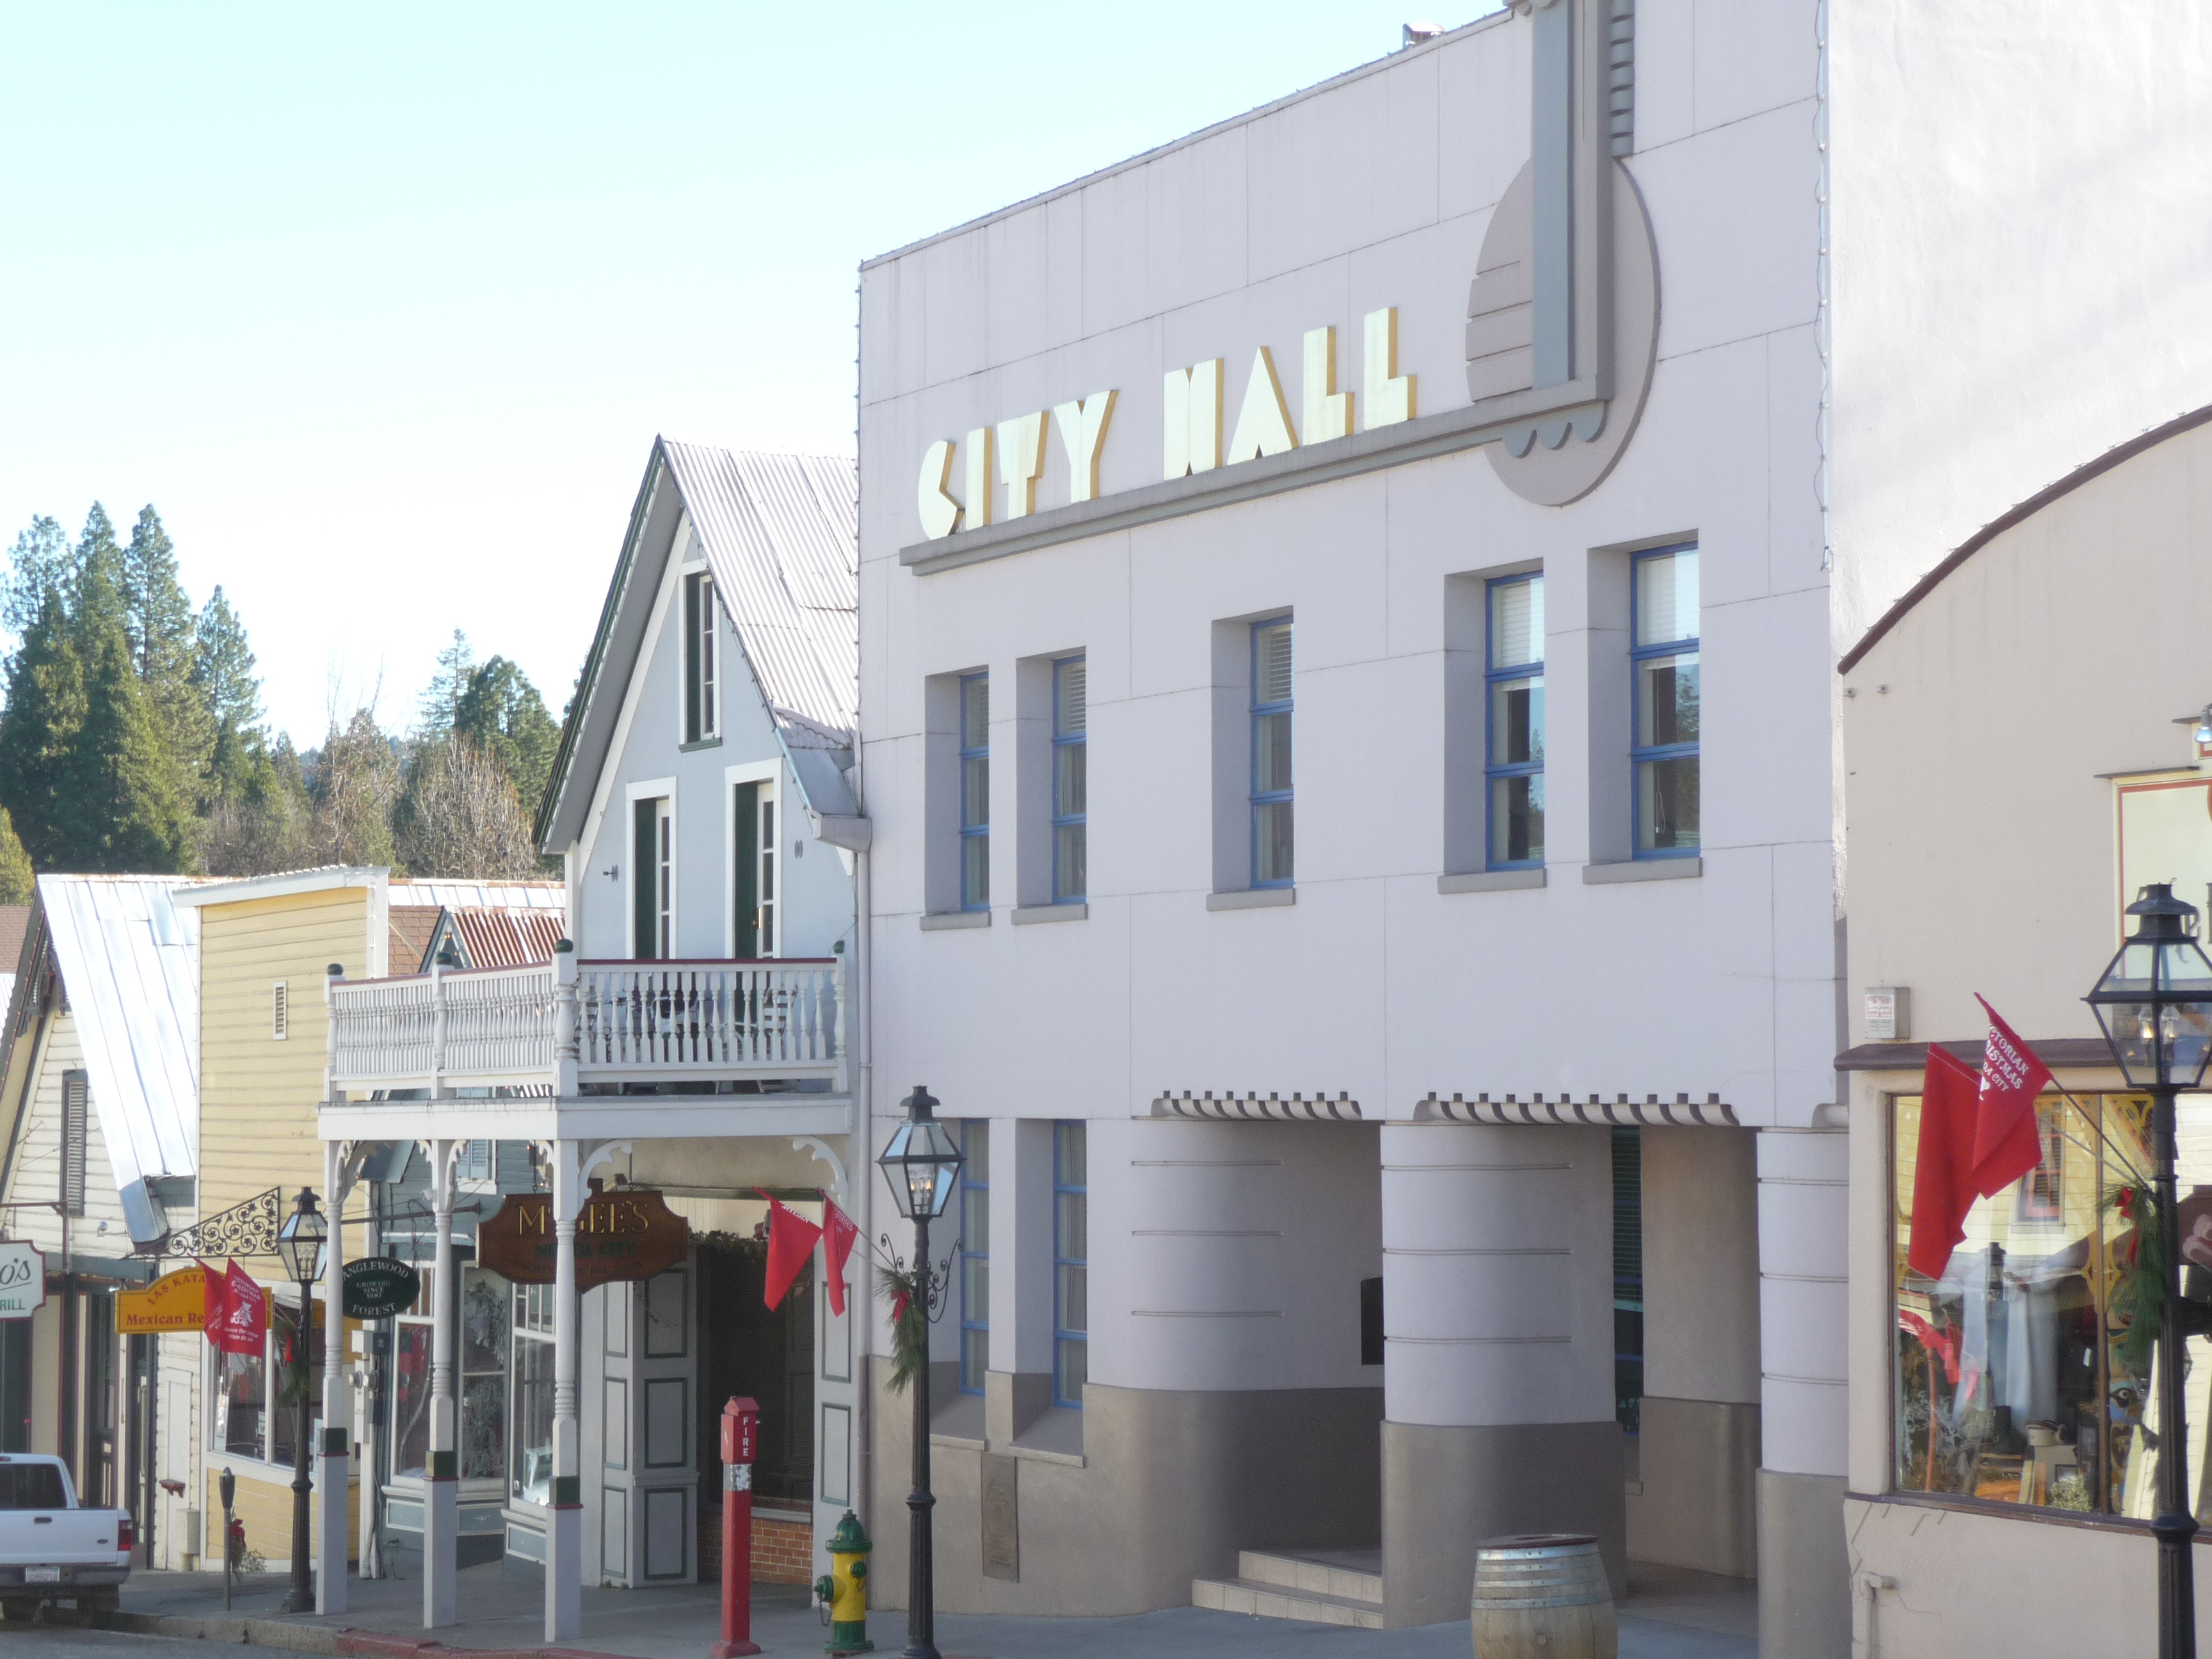 nevada city hall 124 Overweight teens may be able to battle their genetic tendencies with one ...